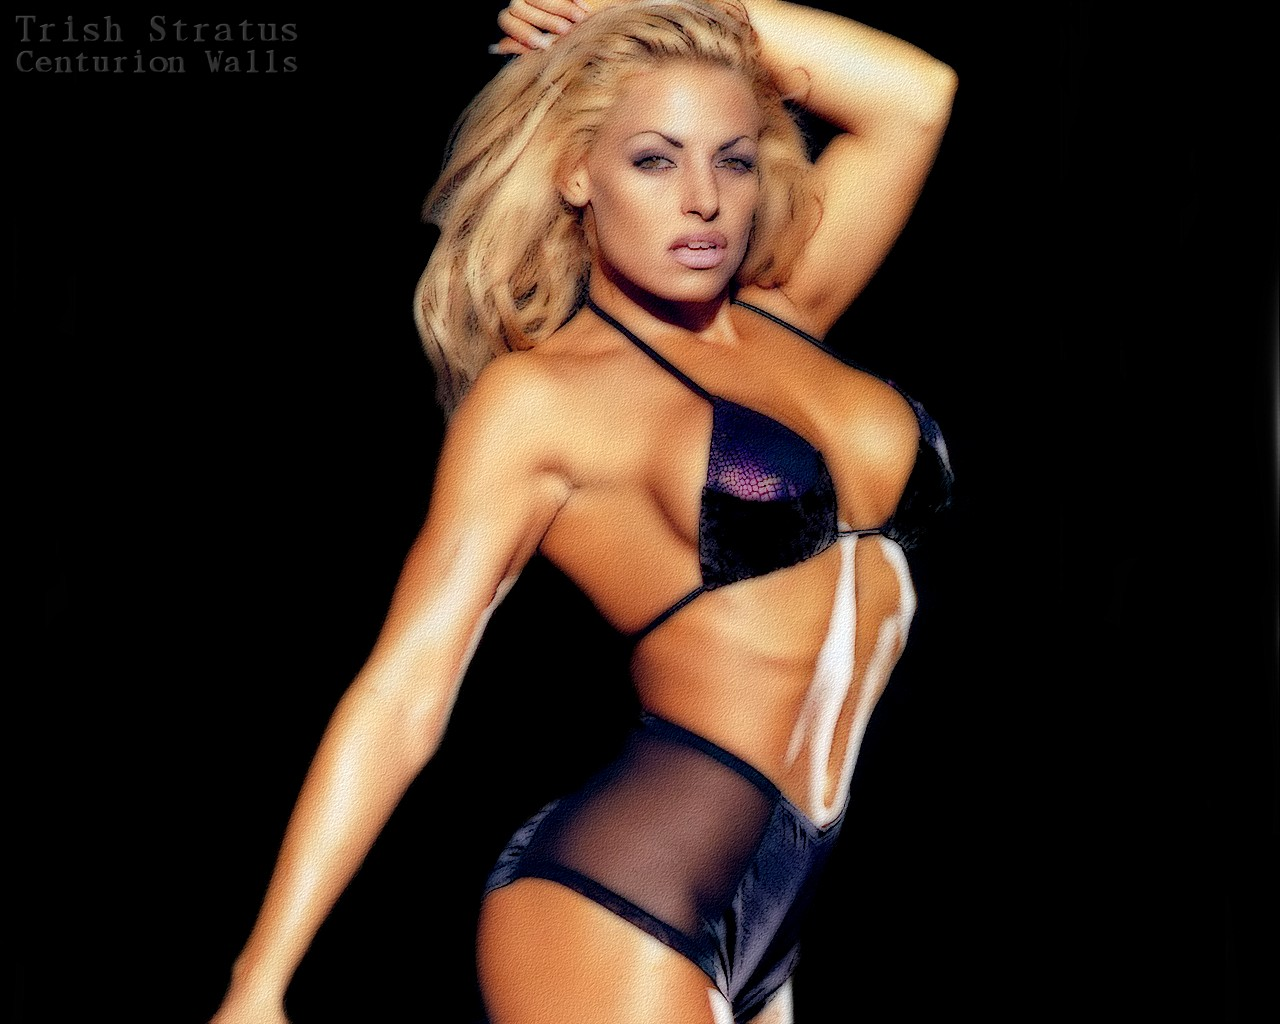 pictures of wwe diva beth phoenix naked